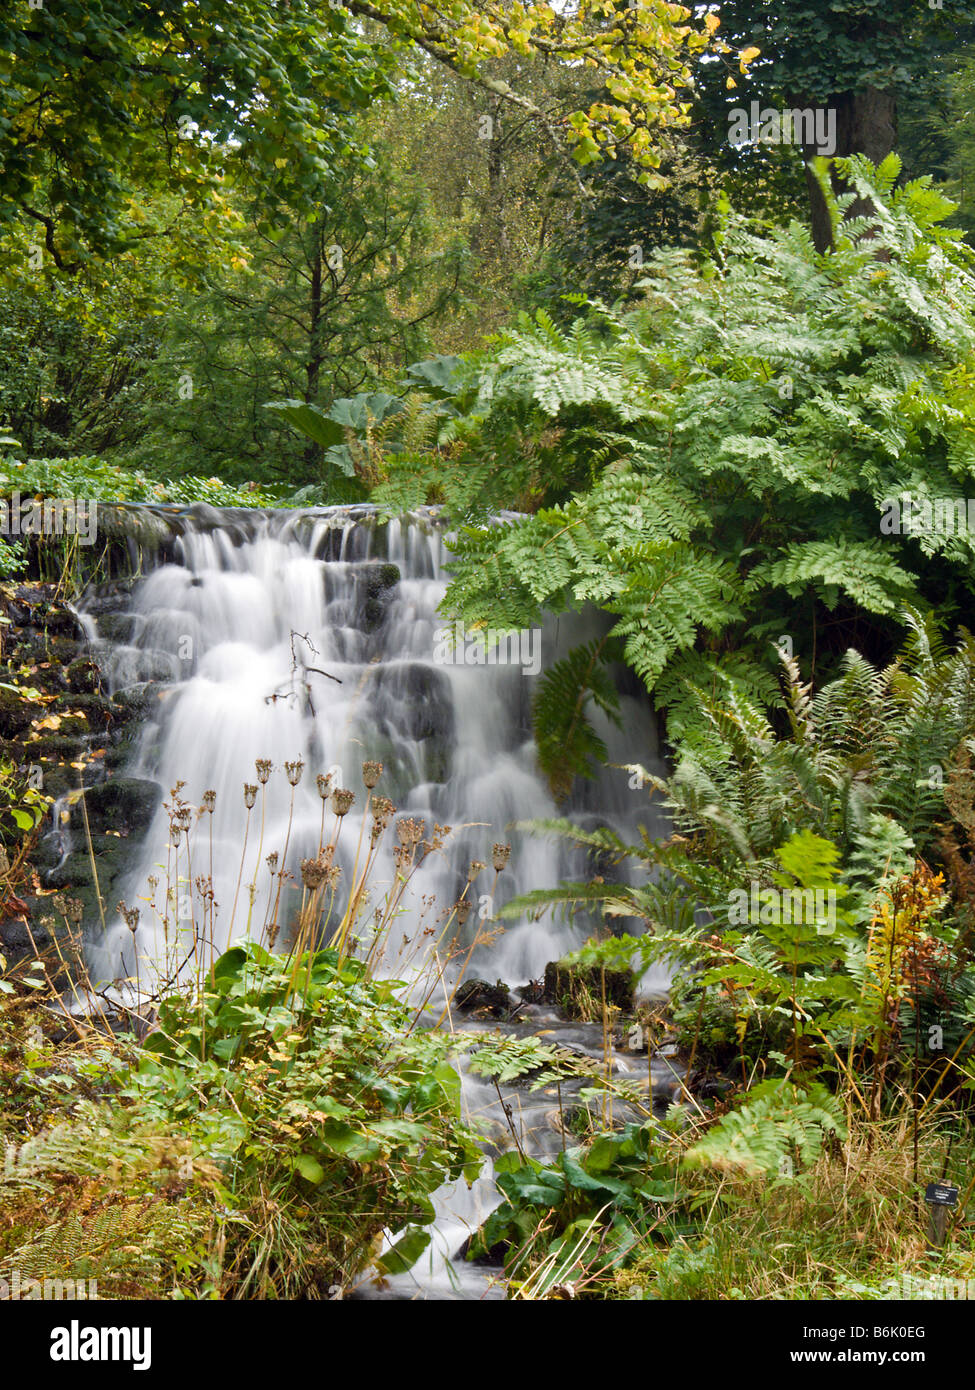 Trees and ferns at one of the water falls in dawyck for Stobo water gardens